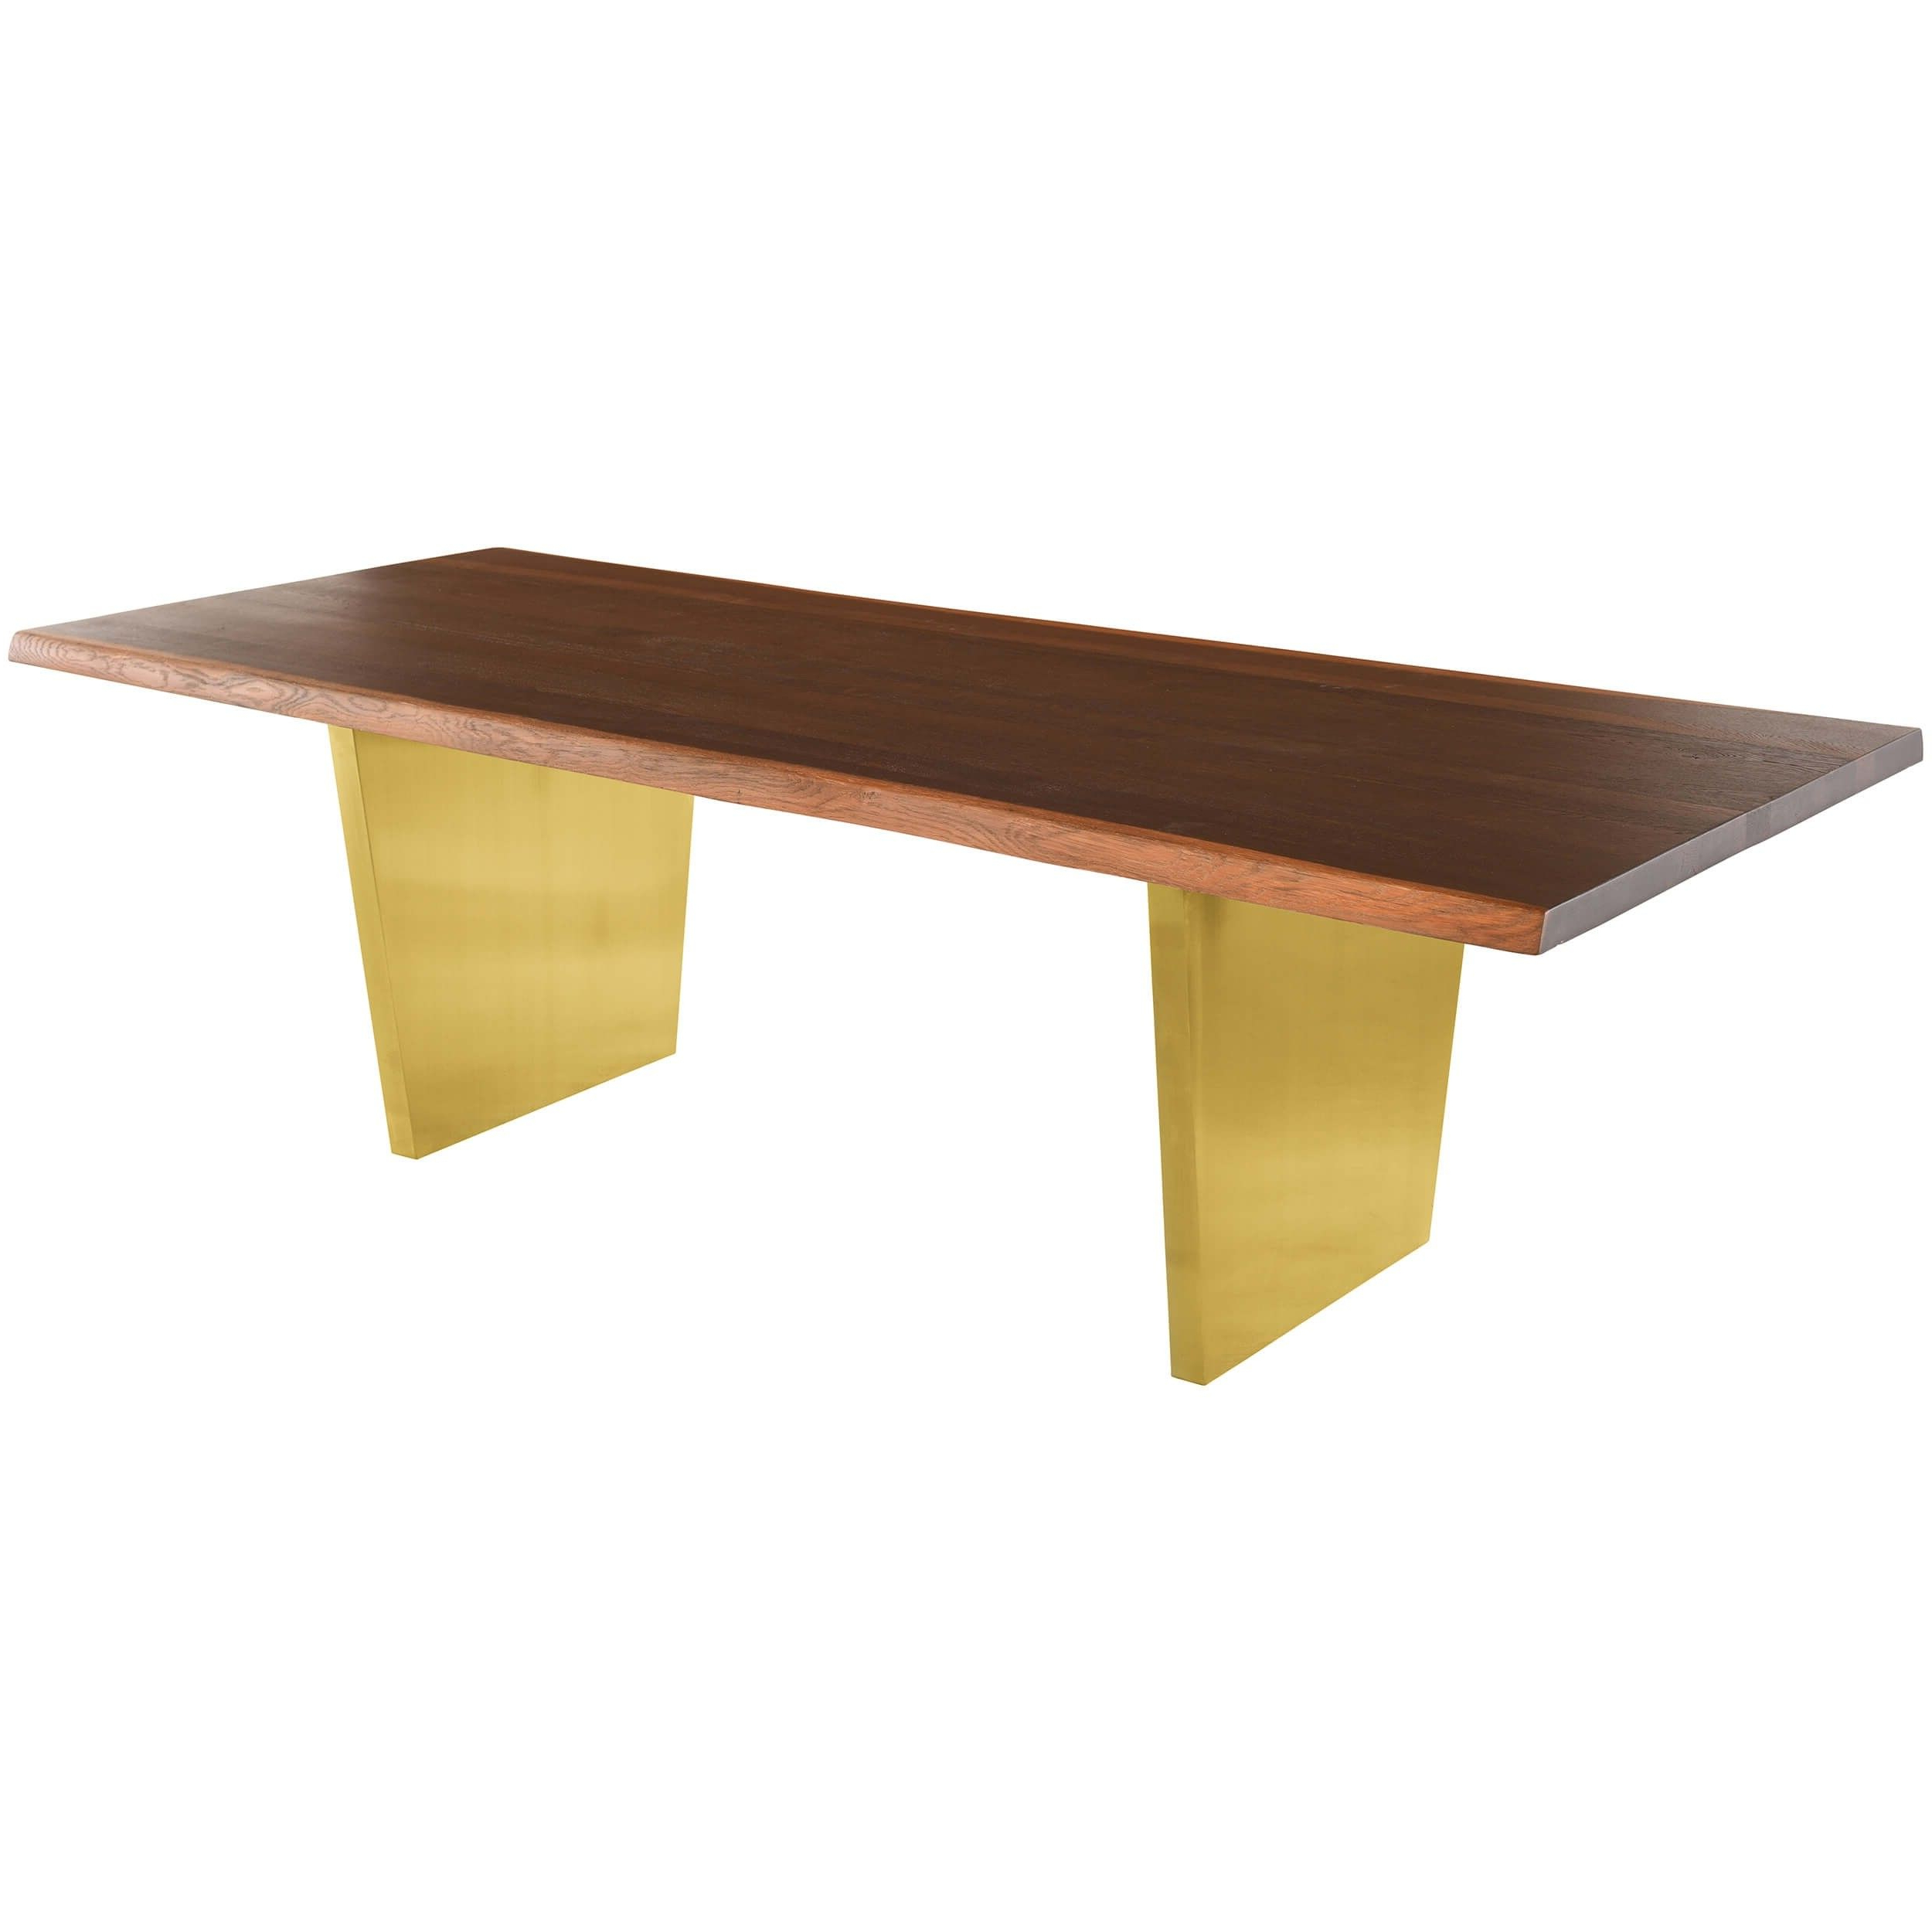 Aiden Dining Table, Seared Oak/brushed Gold Base – 78 In Famous Dining Tables In Seared Oak (View 3 of 25)